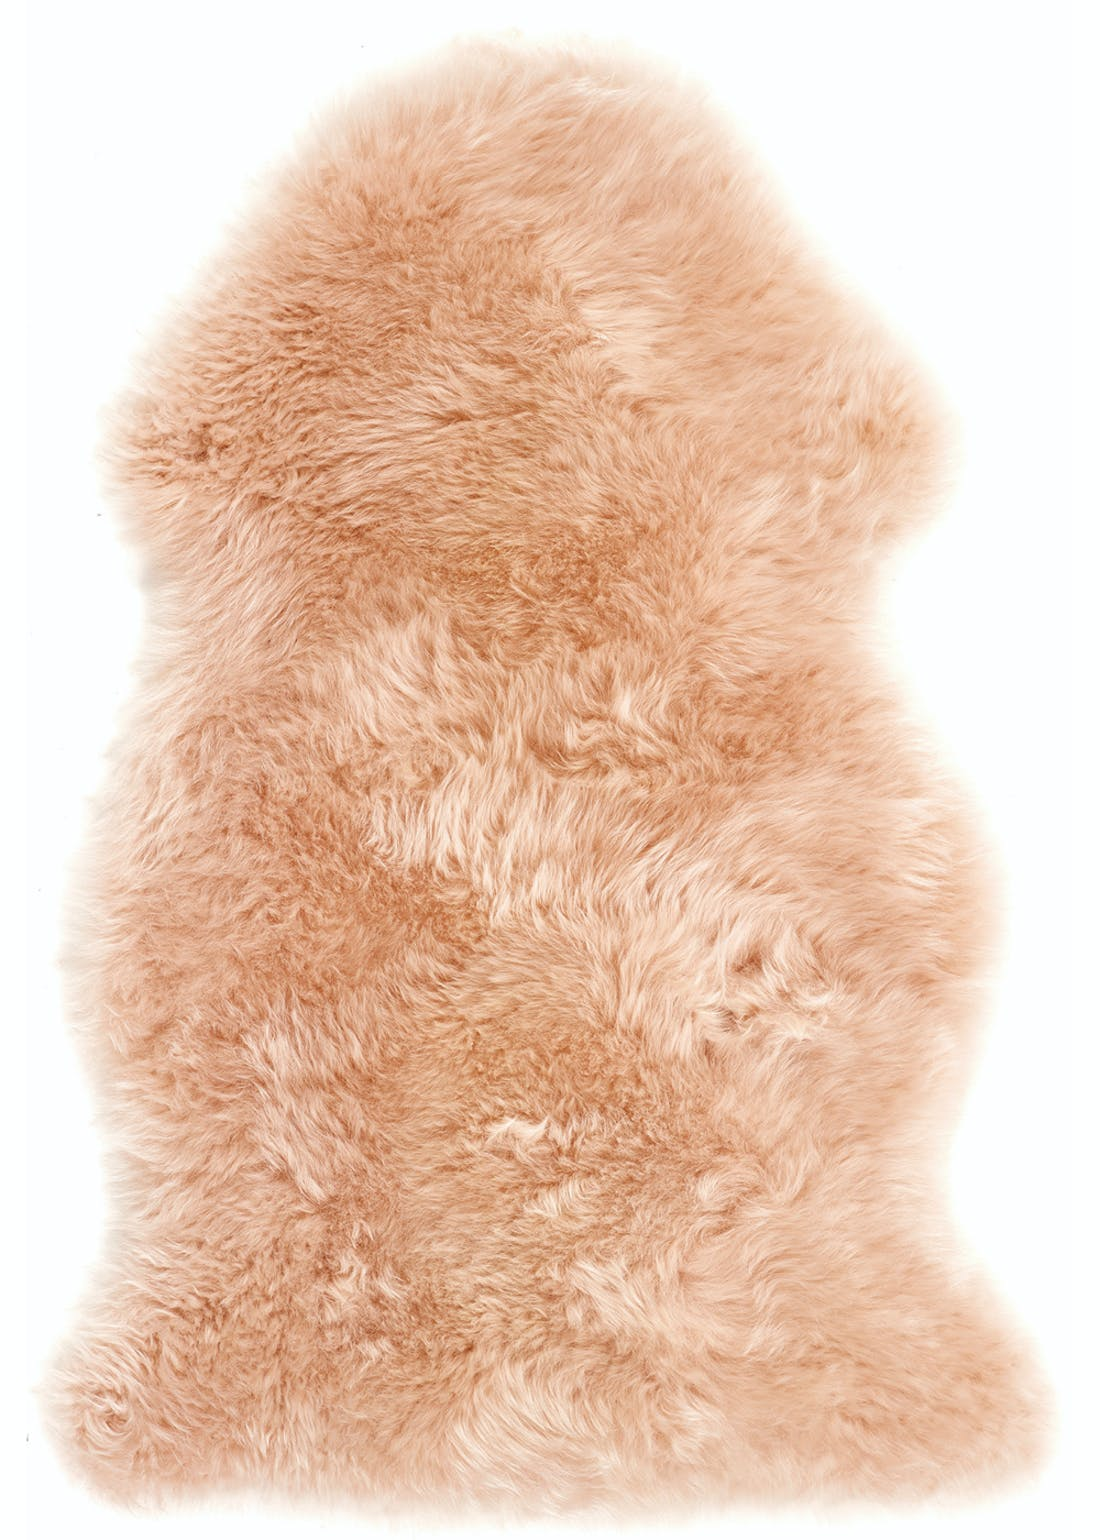 Origins Blush Pink Genuine Sheepskin Rug (95cm x 65cm)